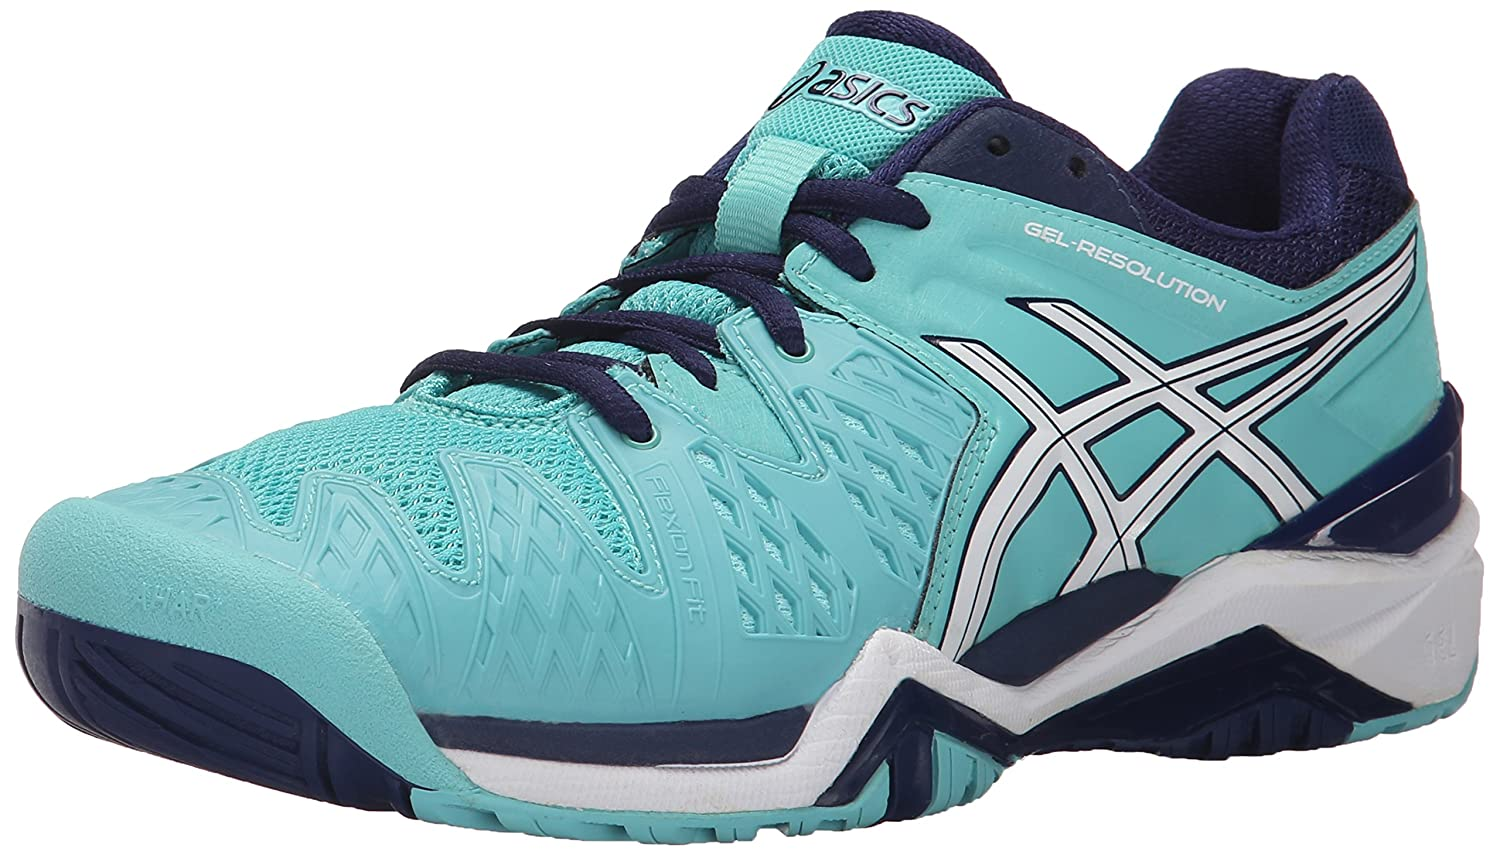 ASICS Gel Resolution 6 WIDE Women's Tennis Shoe White/Silver - WIDE version B00XYCP5O2 11.5 B(M) US|Pool Blue/White/Indigo Blue